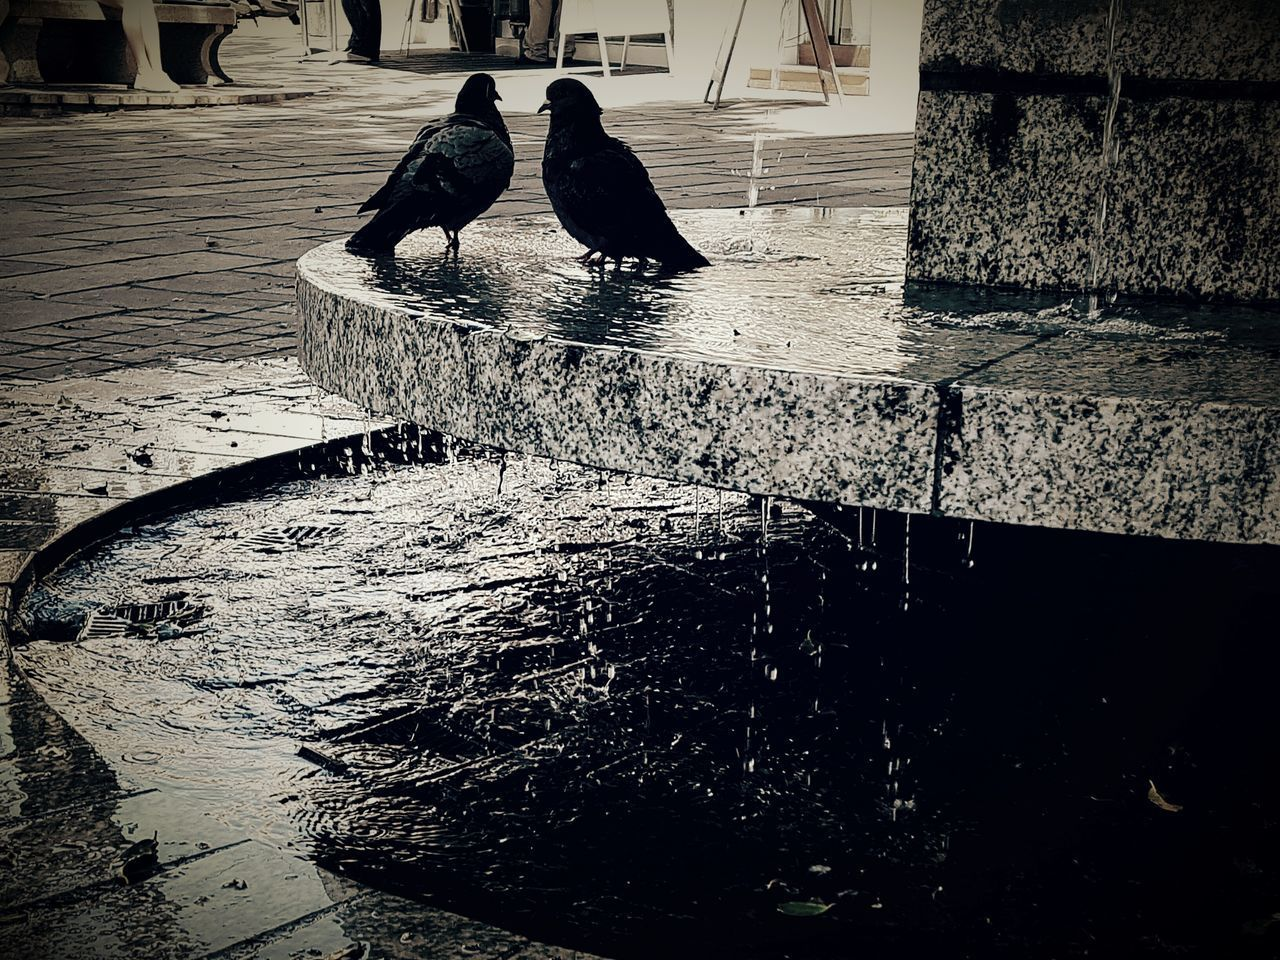 bird, animal themes, water, animals in the wild, reflection, day, animal wildlife, perching, outdoors, real people, raven - bird, nature